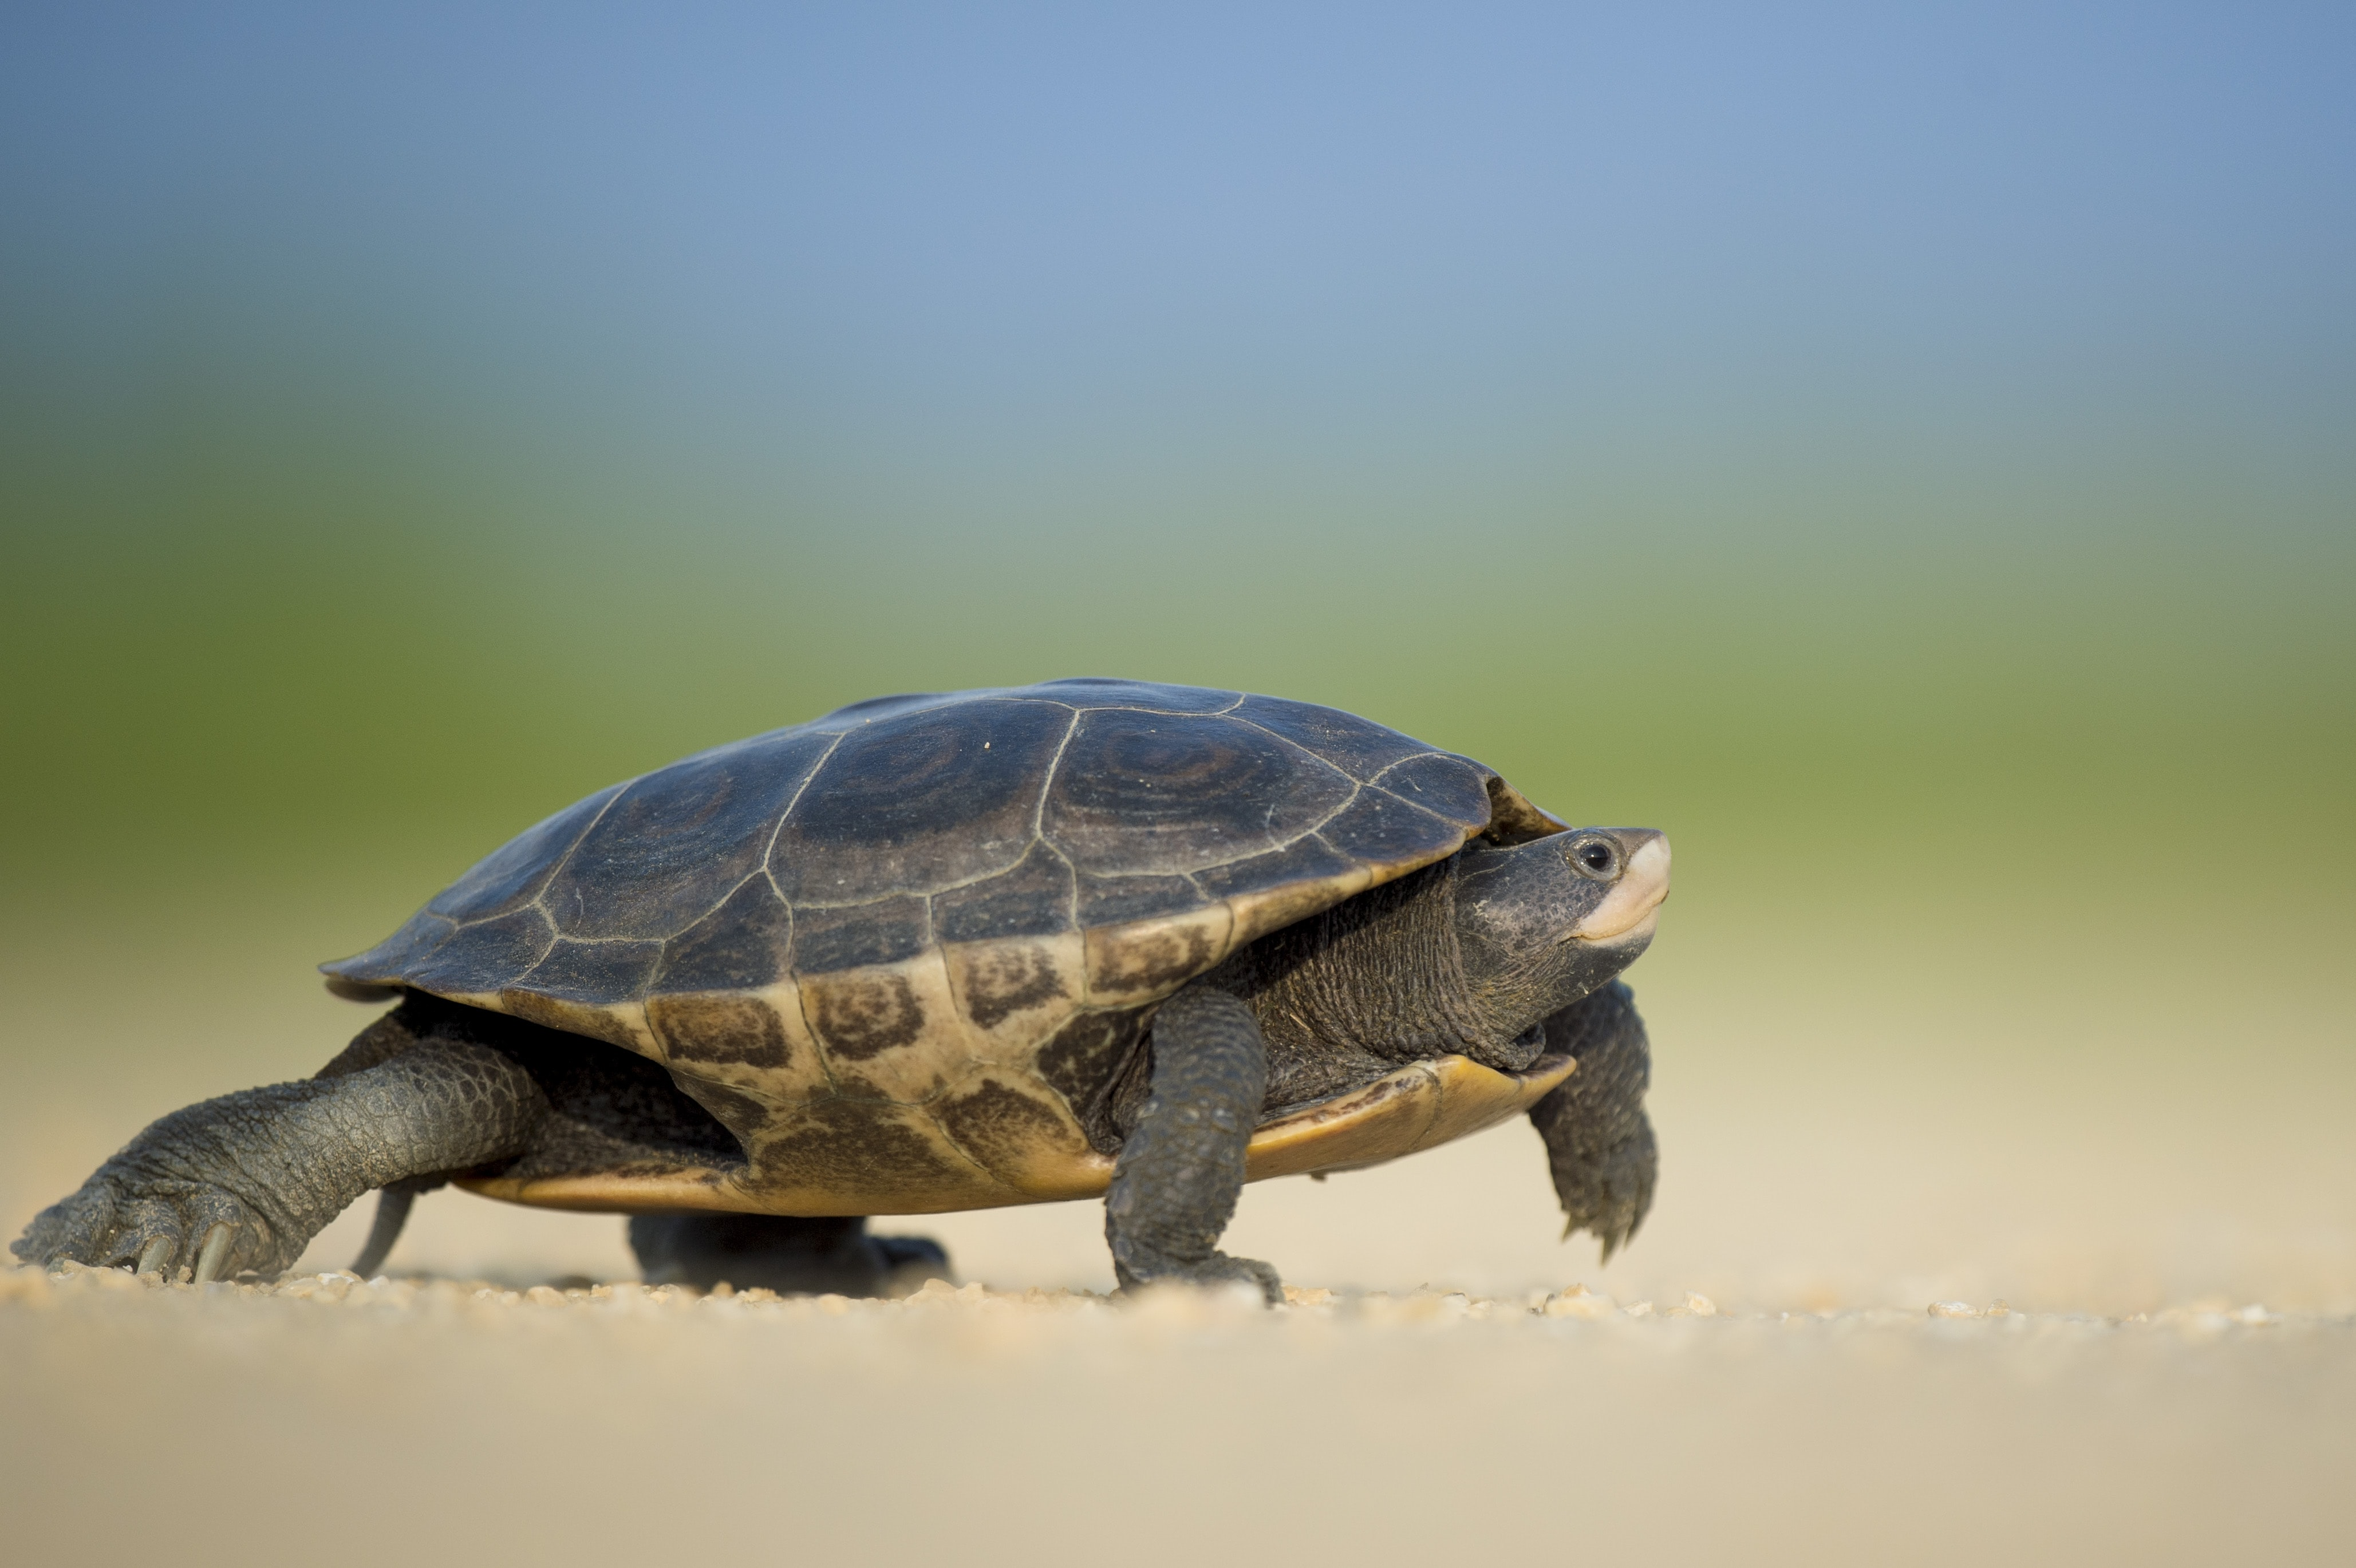 Macro of a turtle scampering across a sandy surface